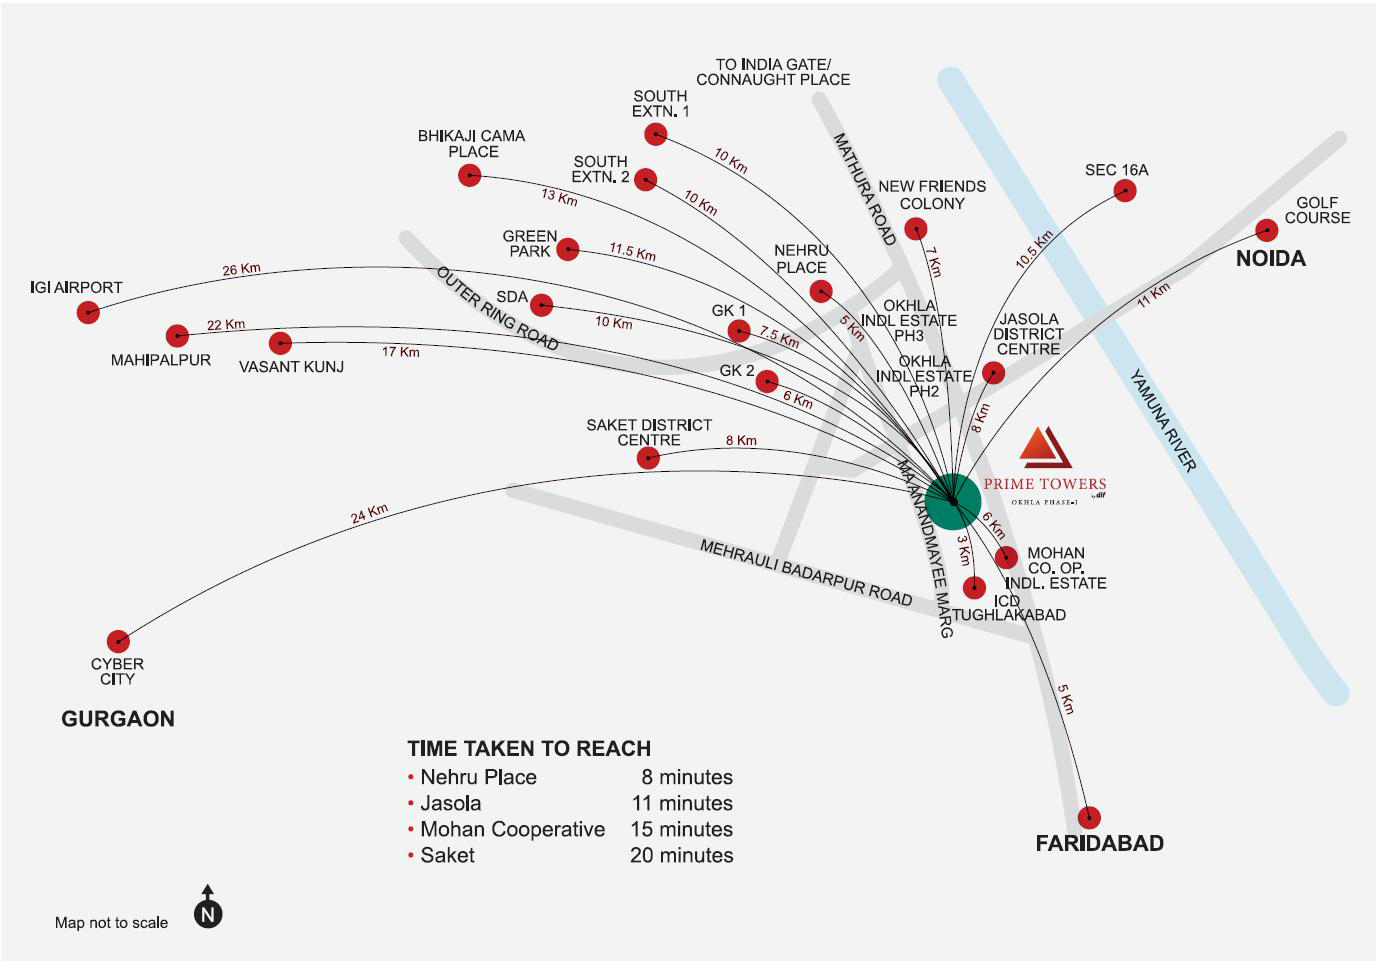 DLF Prime Towers Location Map